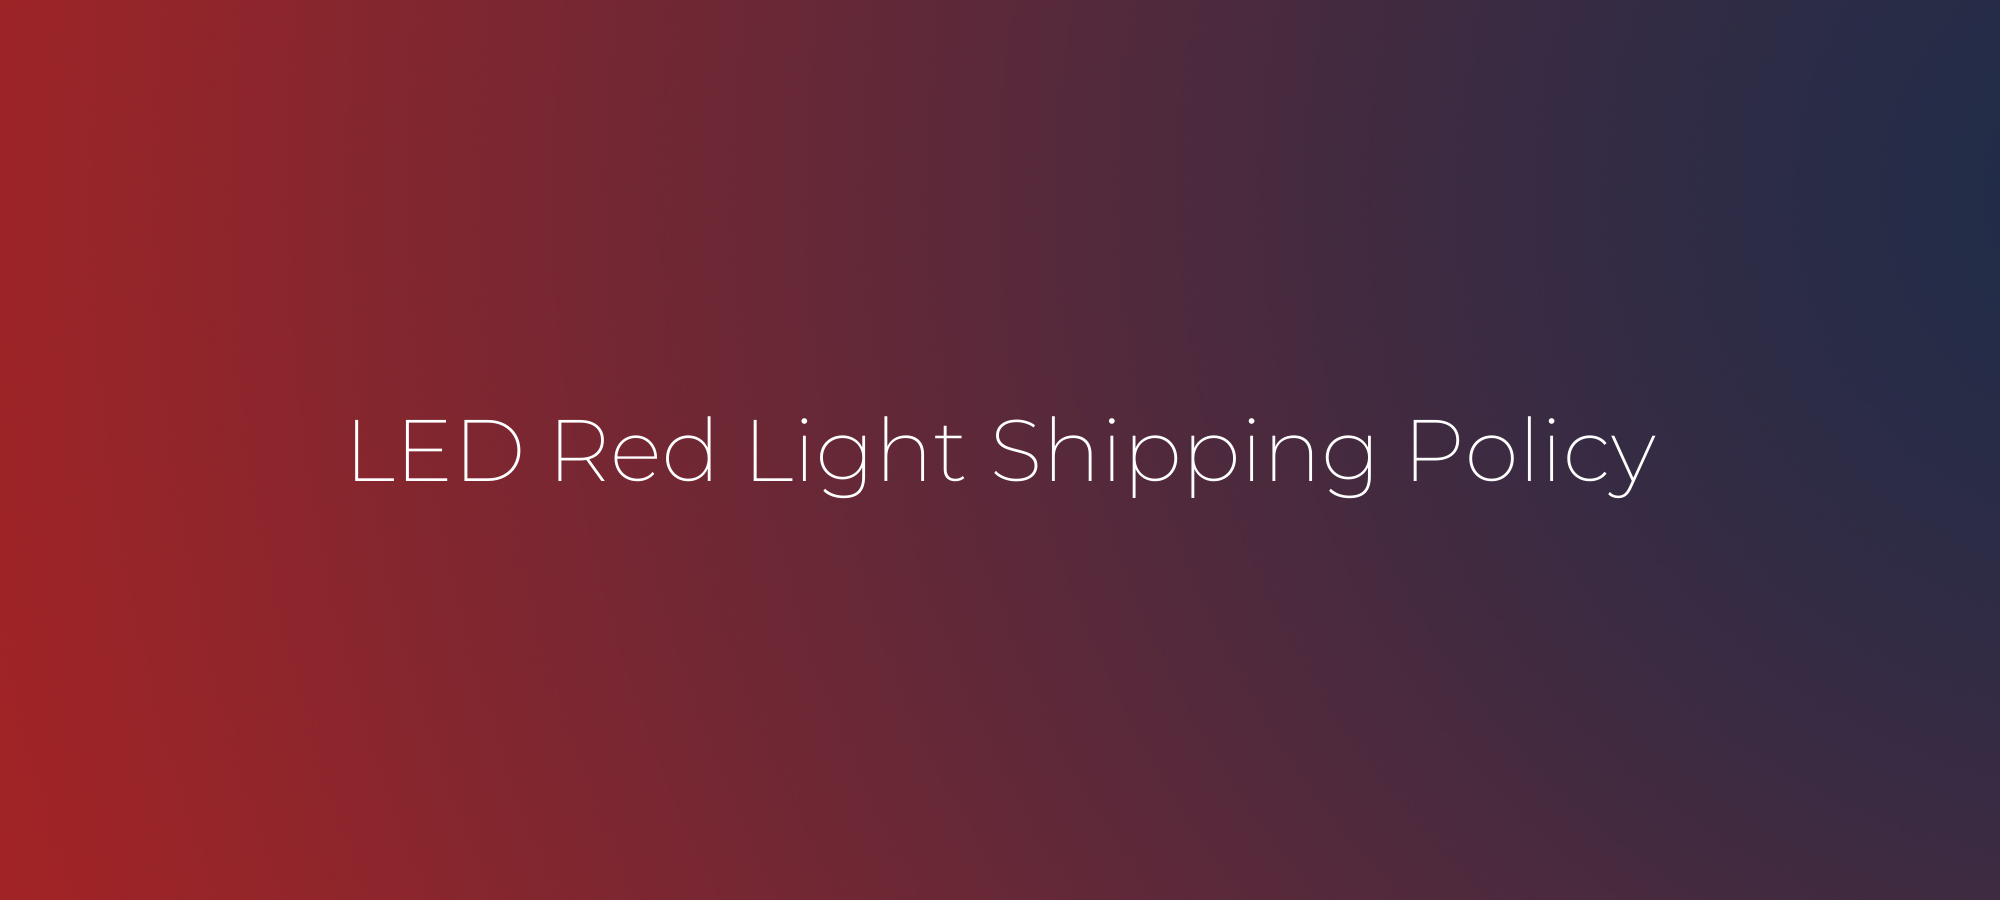 LED Red Light Shipping Policy